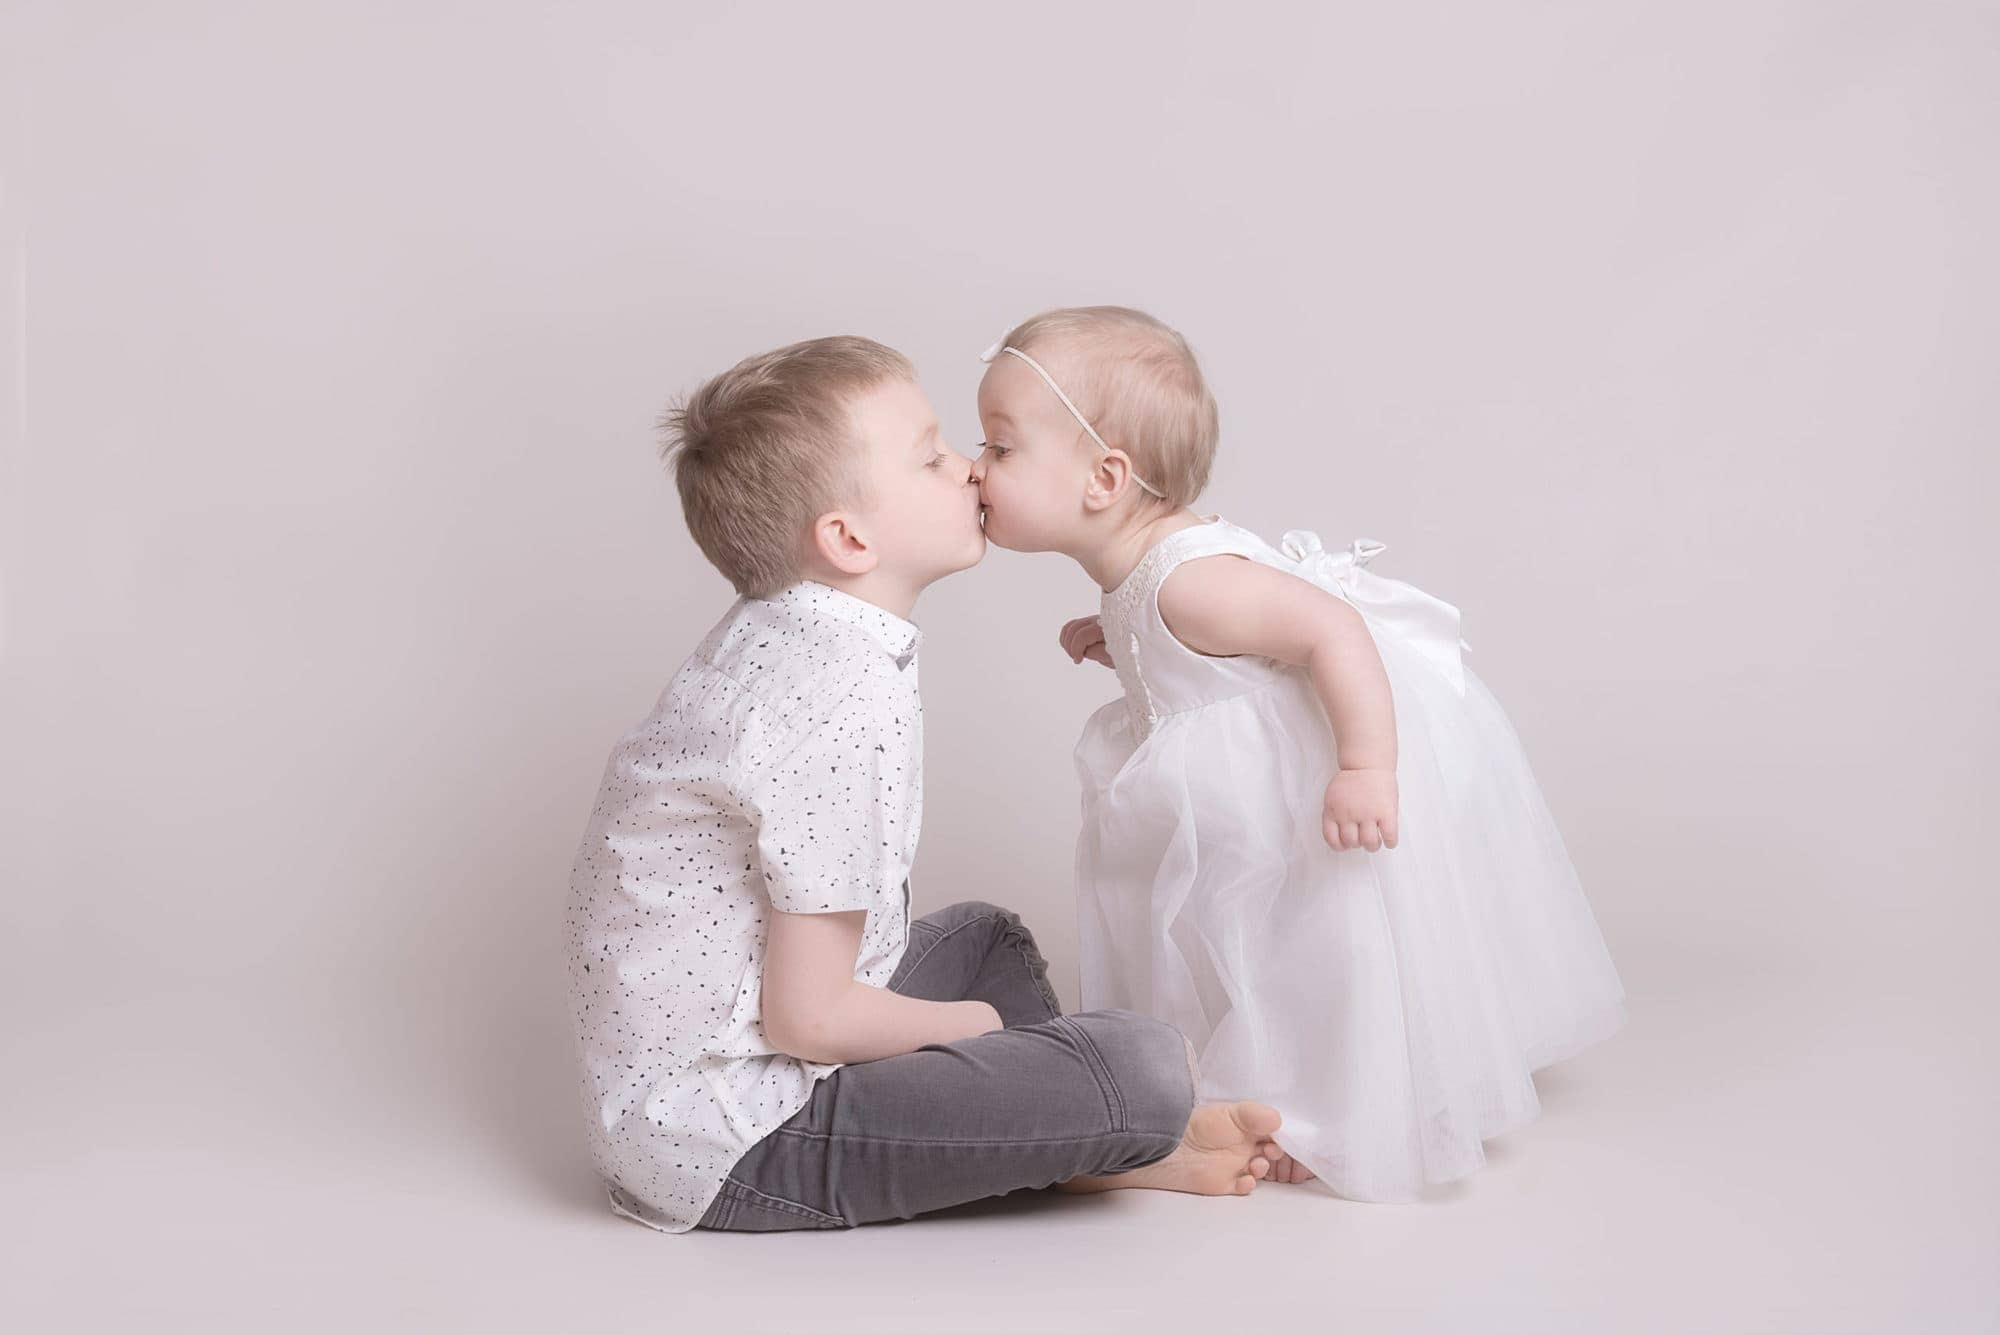 baby girl bending down to give big brother a big kiss